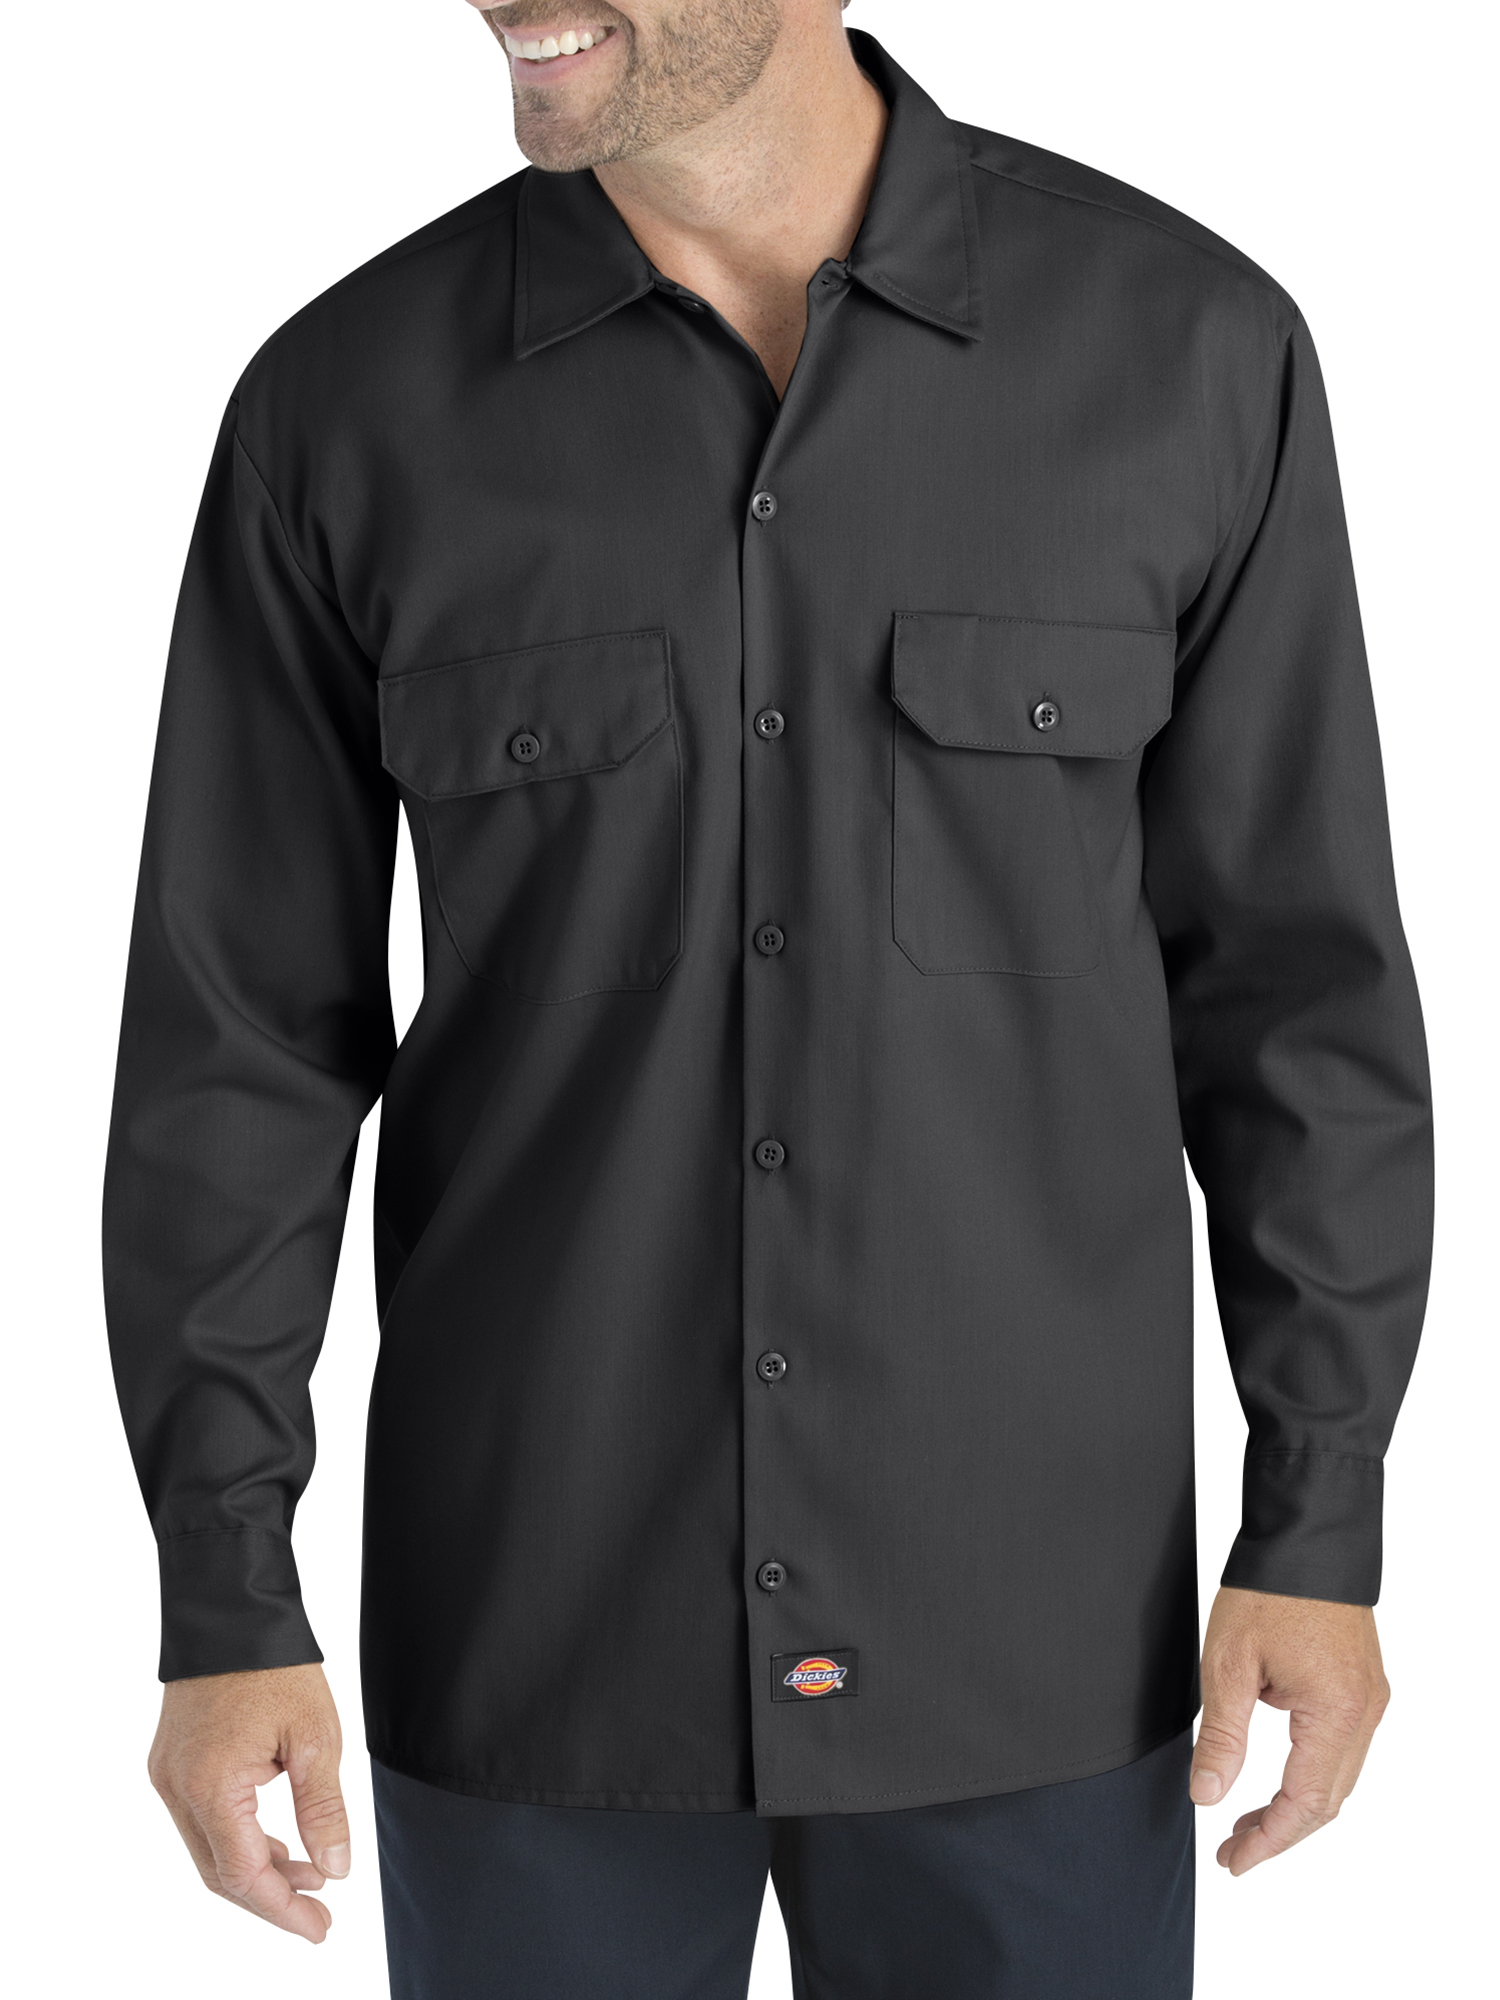 Big Men's Long Sleeve Flex Twill Shirt